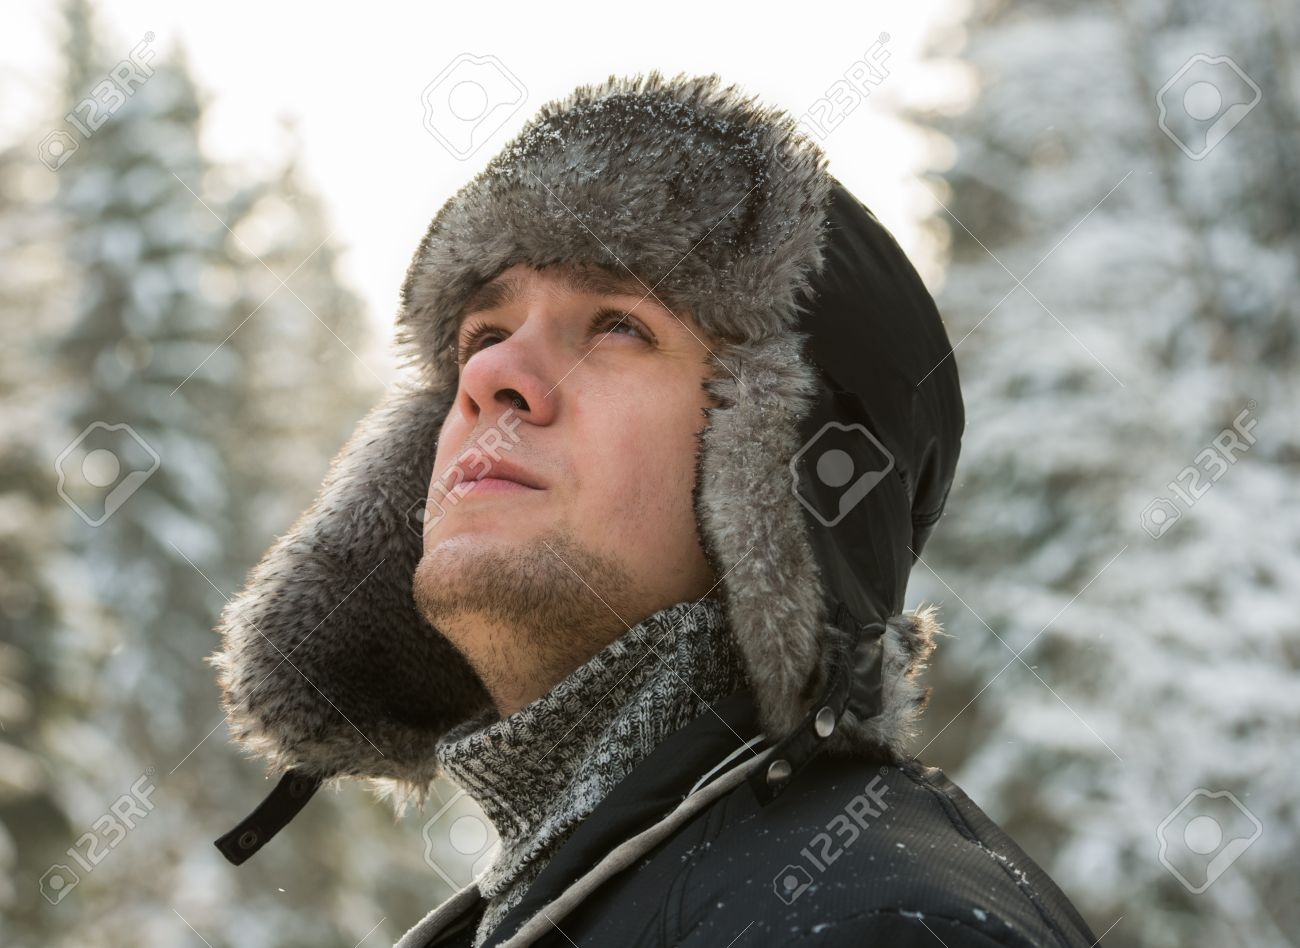 dcb585f9e79 a man in a fur winter hat with ear flaps Stock Photo - 17543416